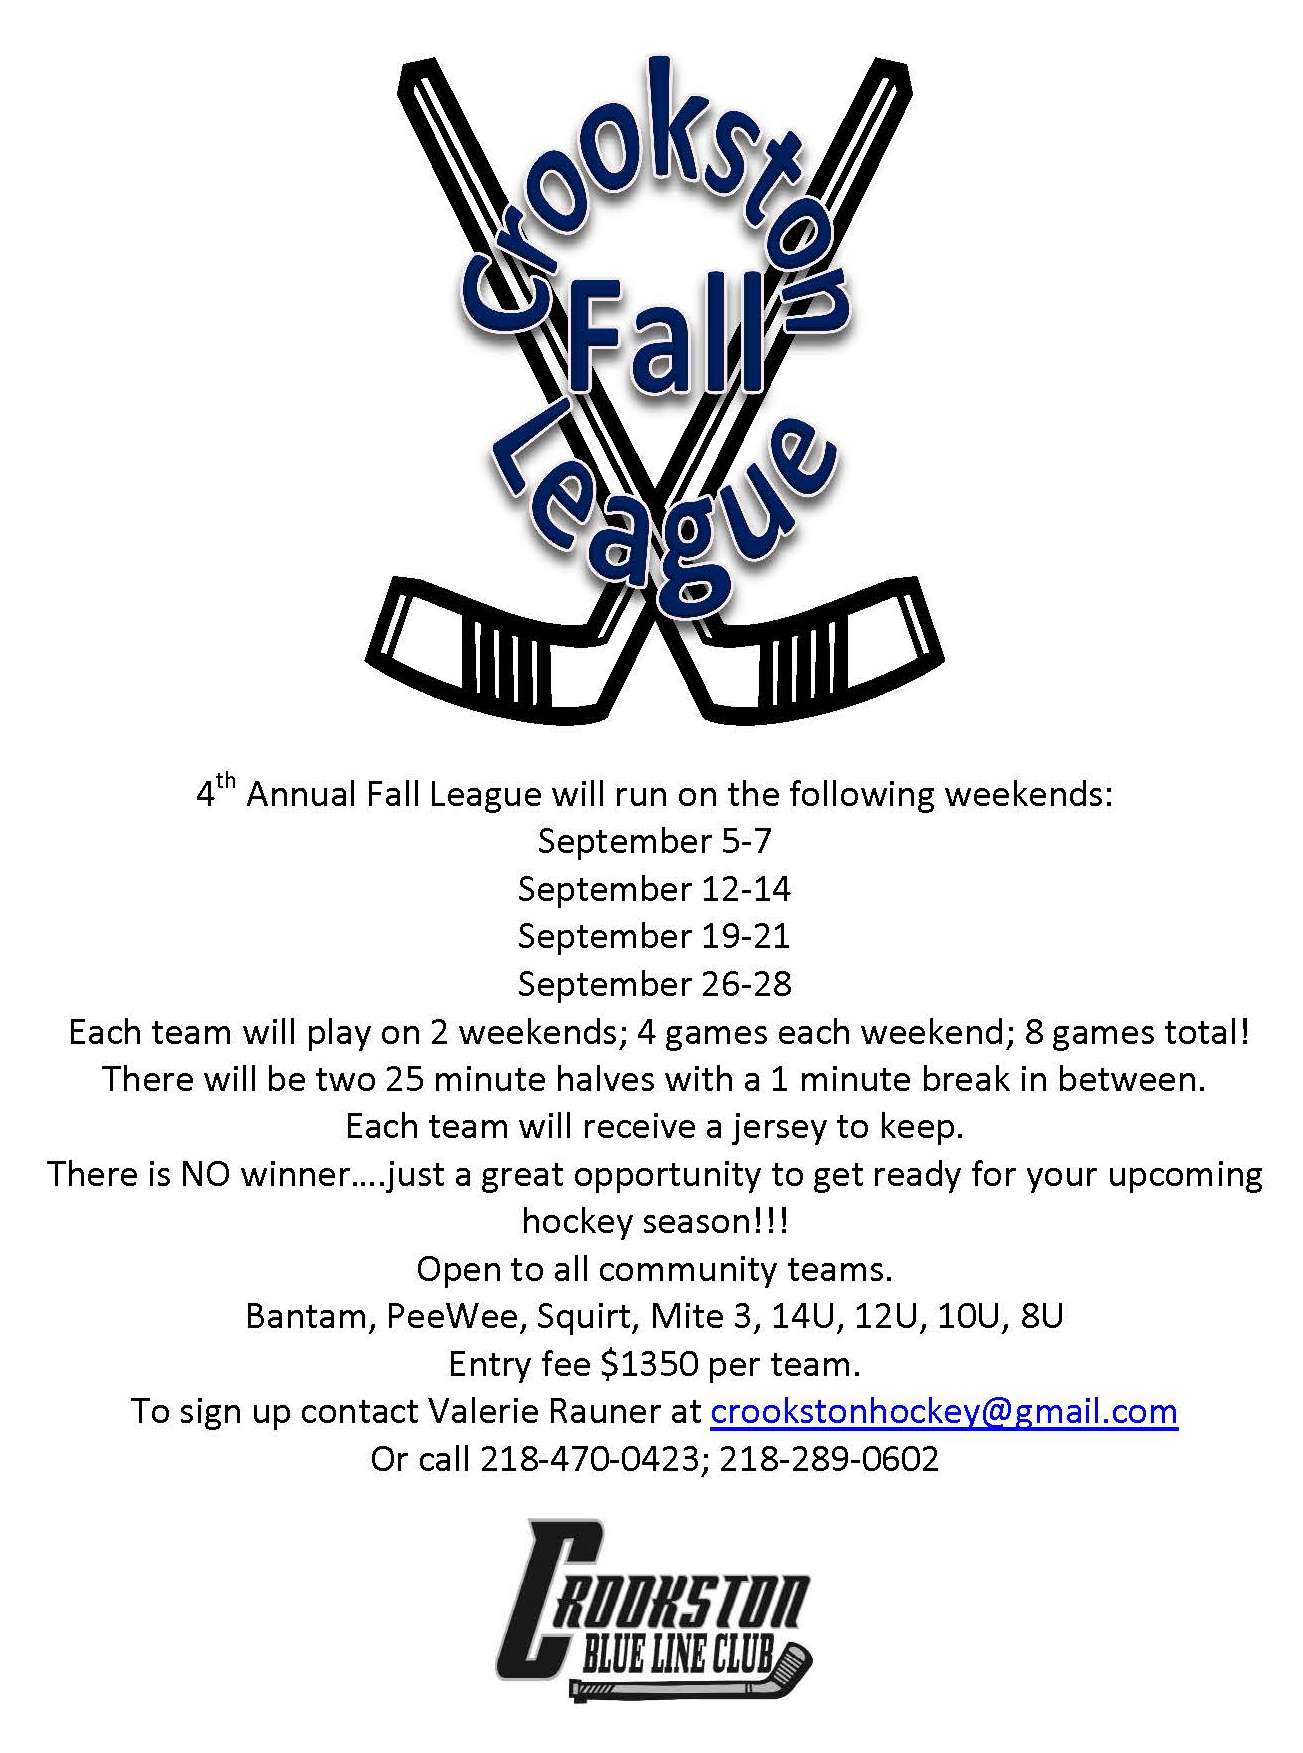 2014 FALL LEAGUE FLYER